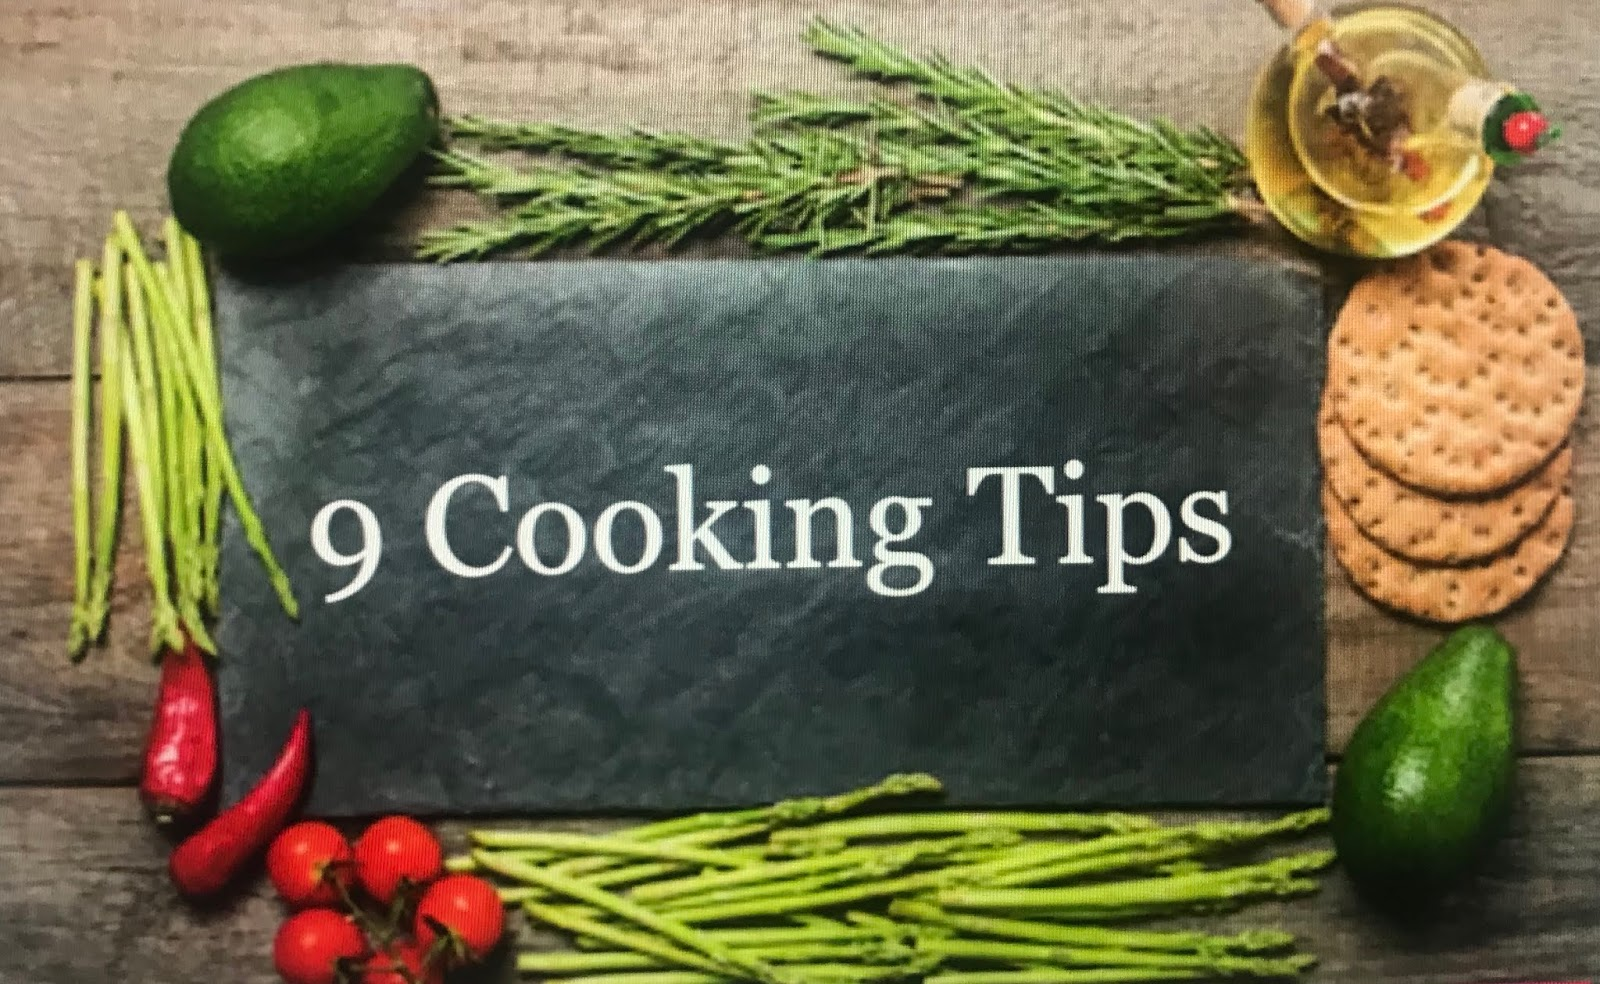 9 Cooking Tips